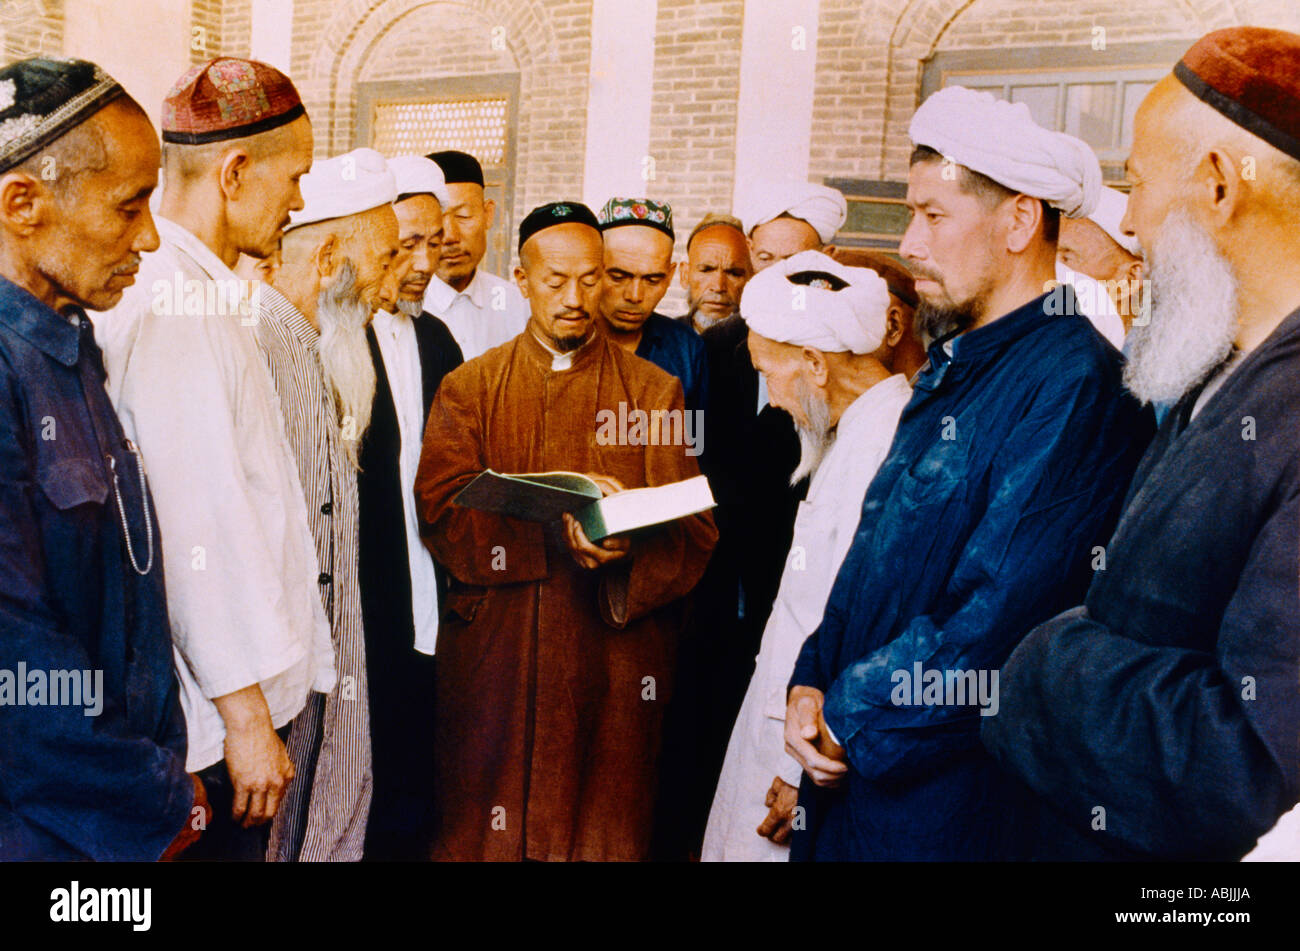 Kashi Xinjiang China Uygur Muslims Imam Reading From Quran In Mosque - Stock Image